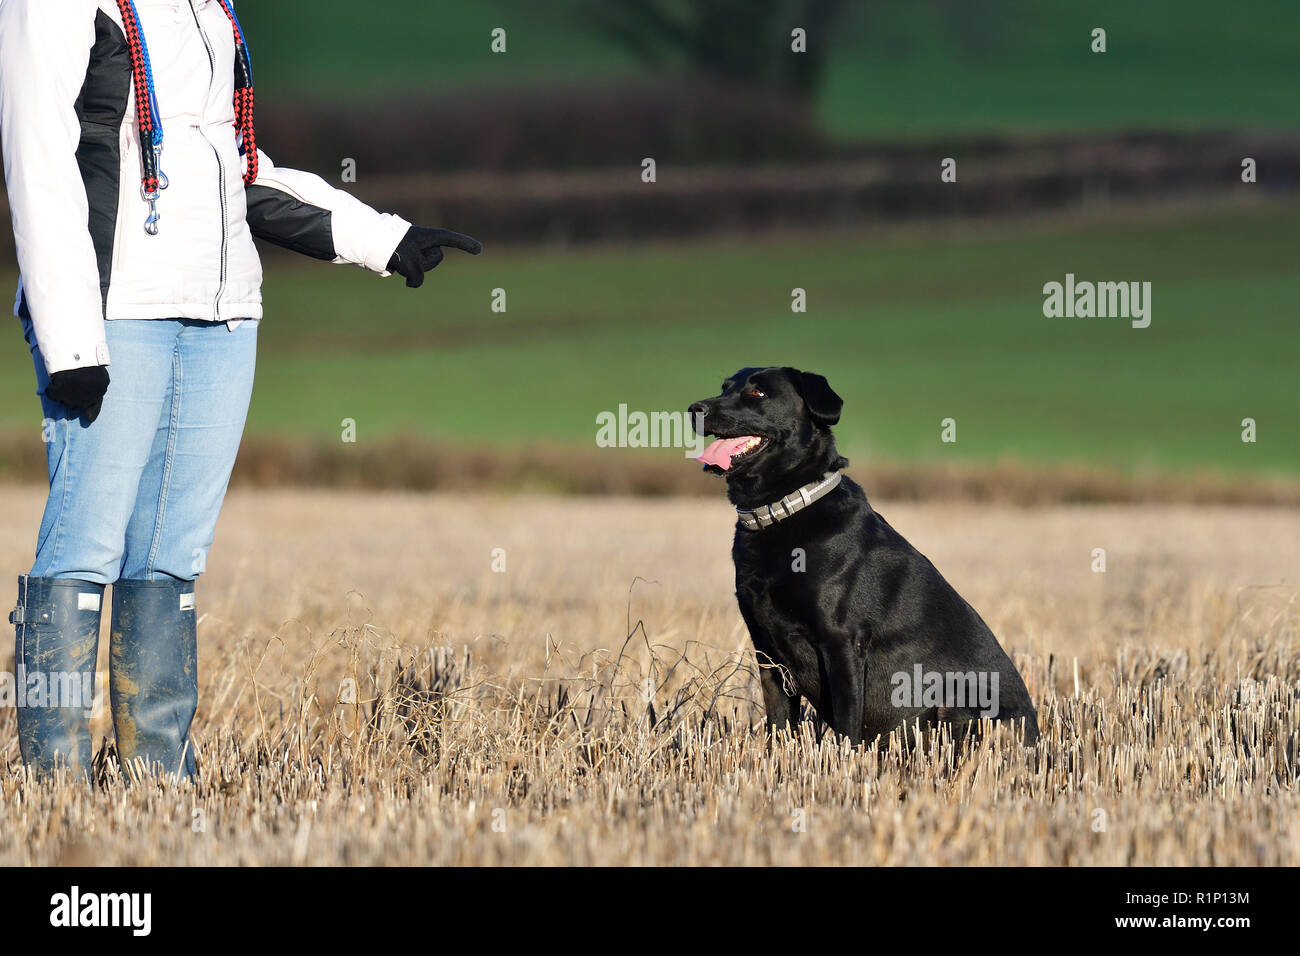 Portrait of an obedient black Labrador sitting in a field in front of a dog trainer - Stock Image